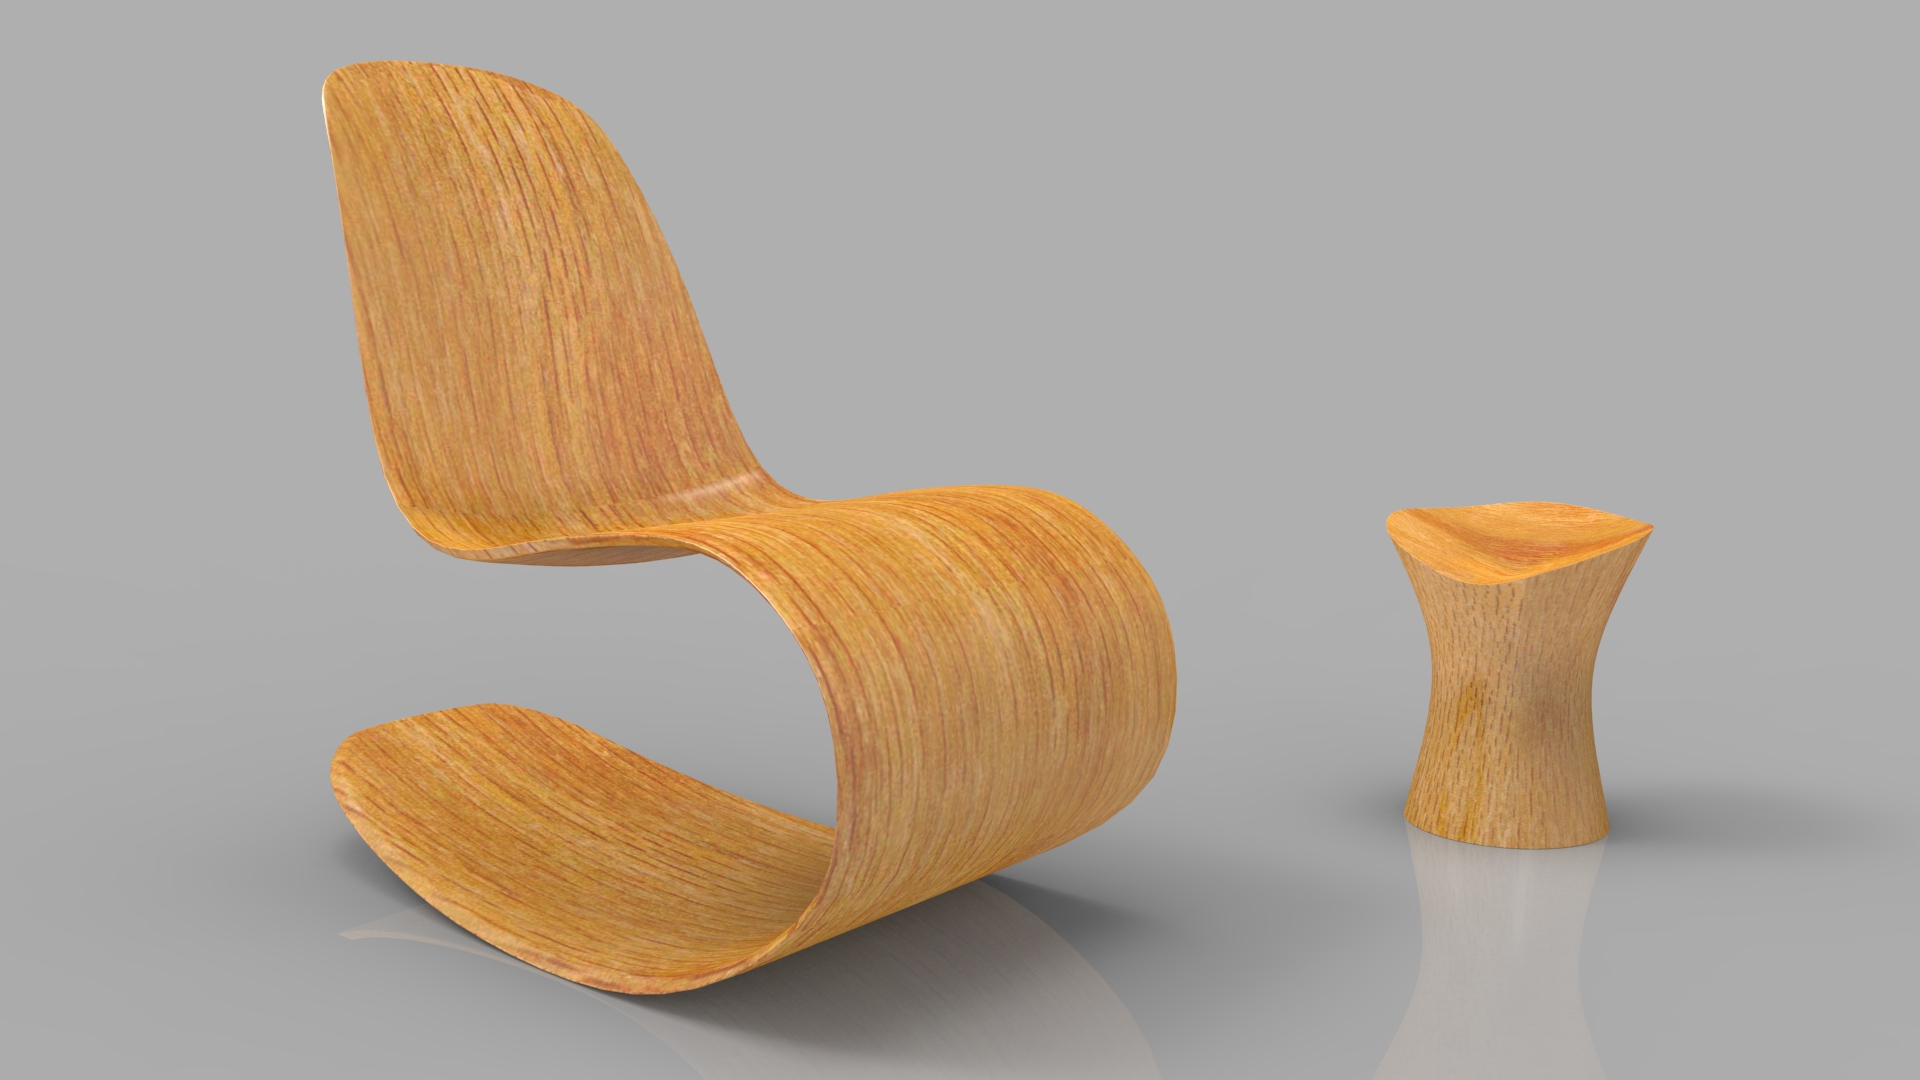 rocking wooden chair 3d model max fbx ma mb obj 286117